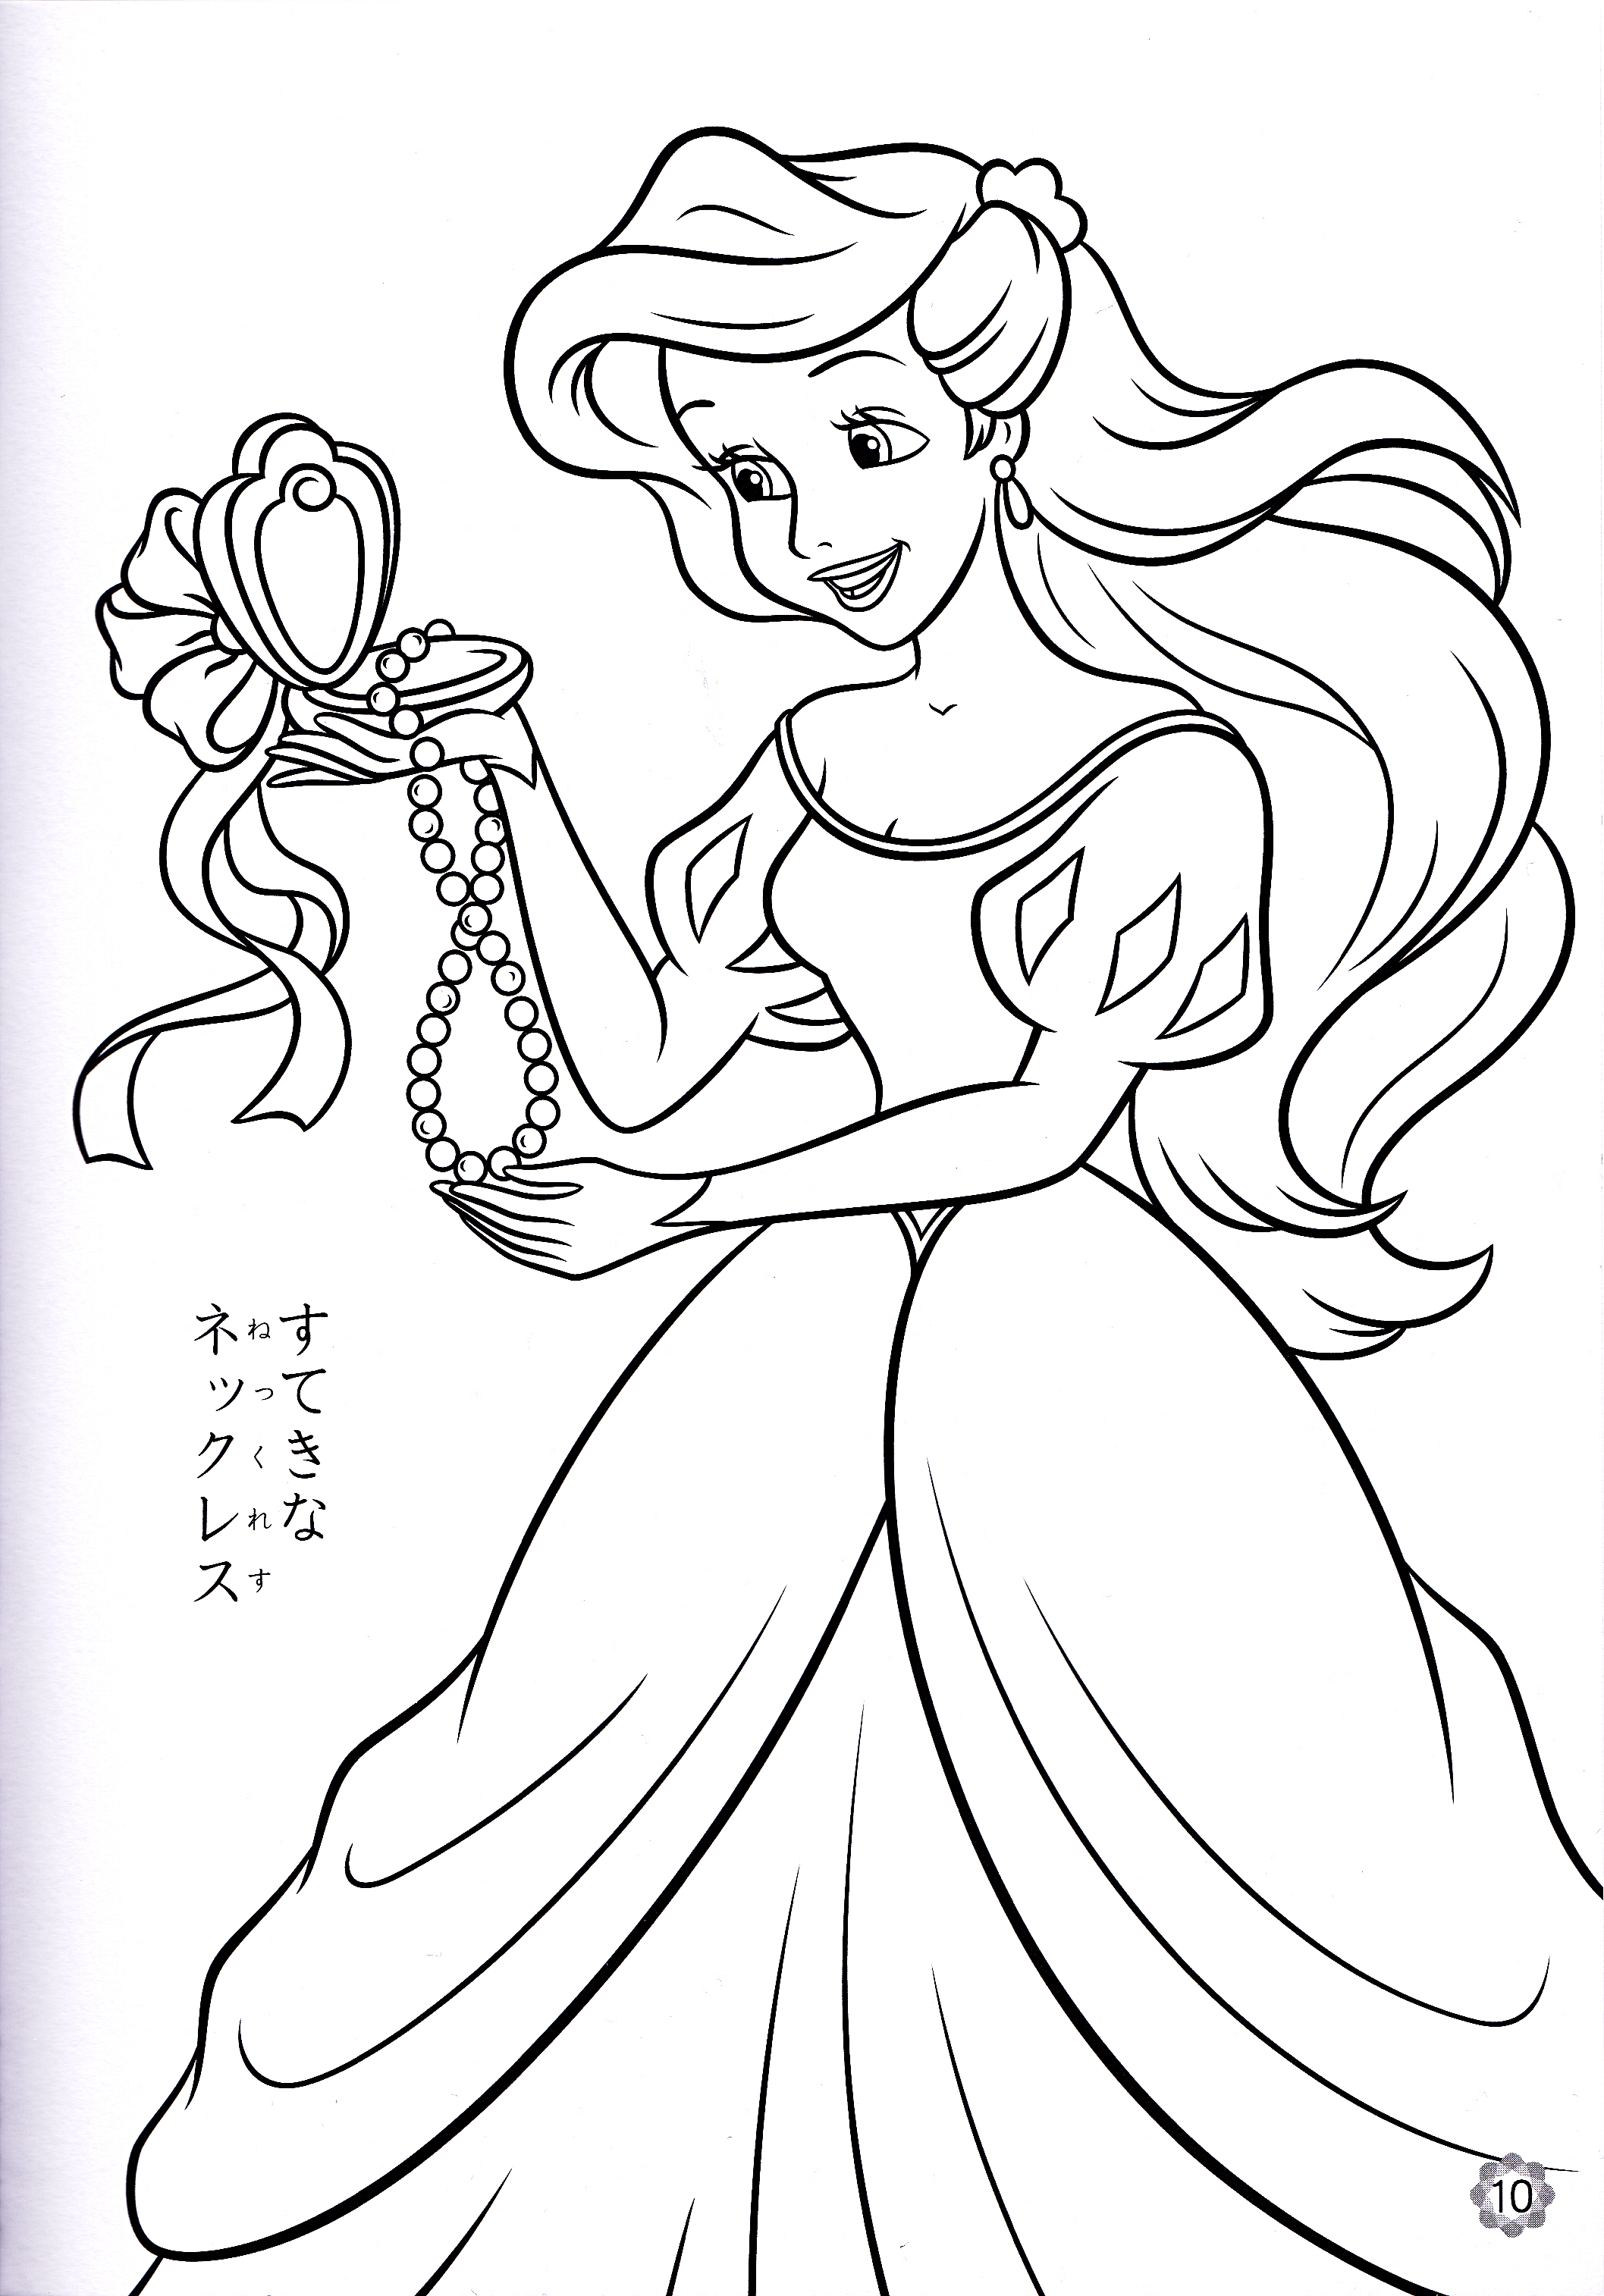 Free Printable Disney Princess Coloring Pages For Kids Disney Princesses Coloring Pages